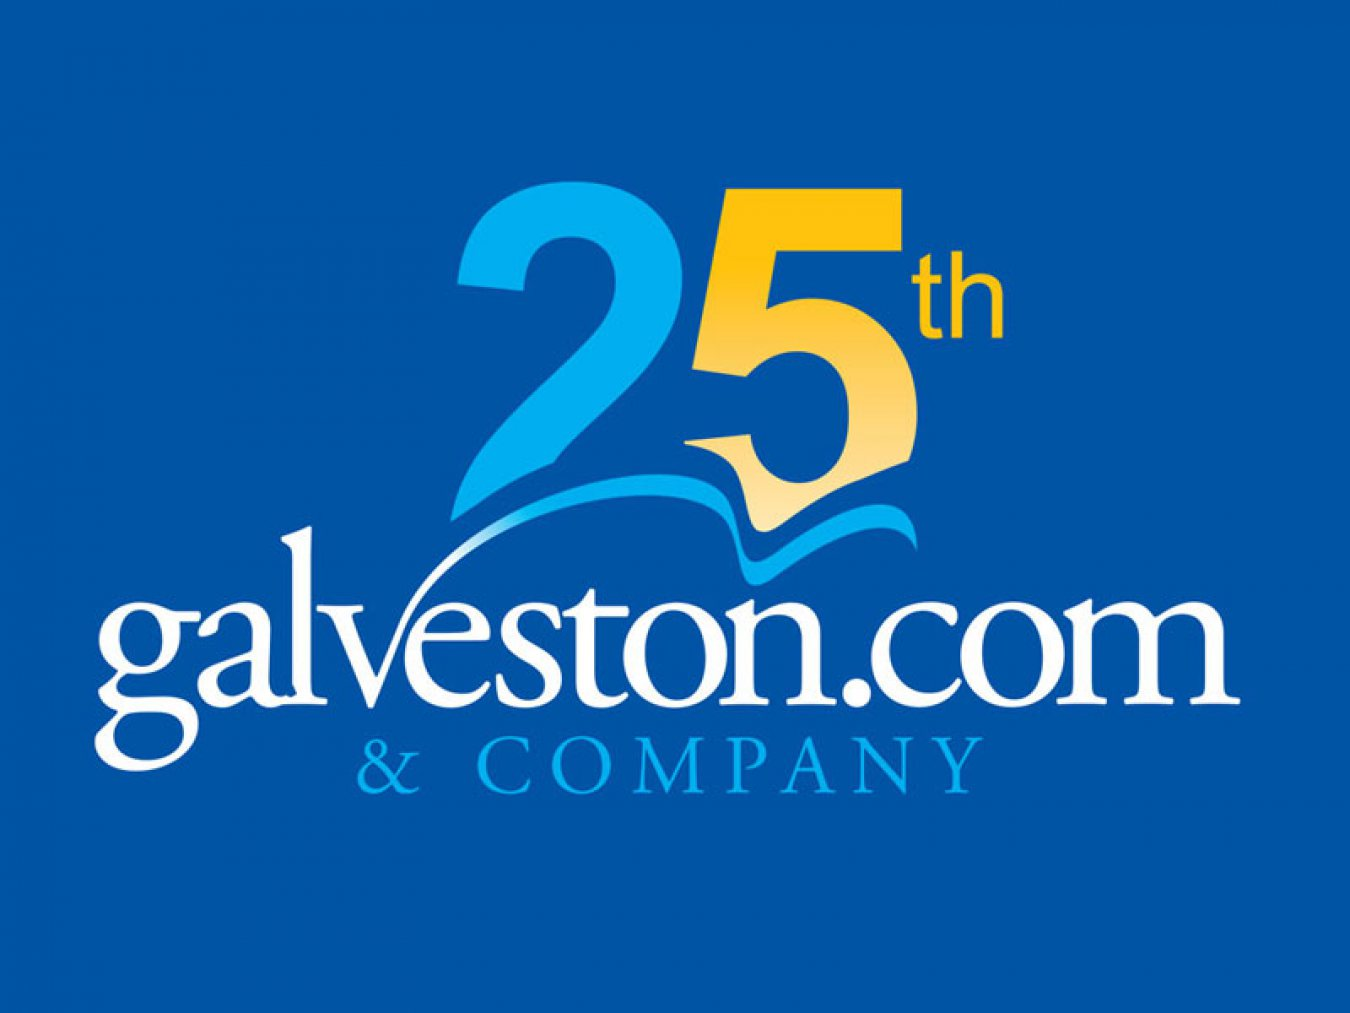 Galveston.com 25th Anniversary